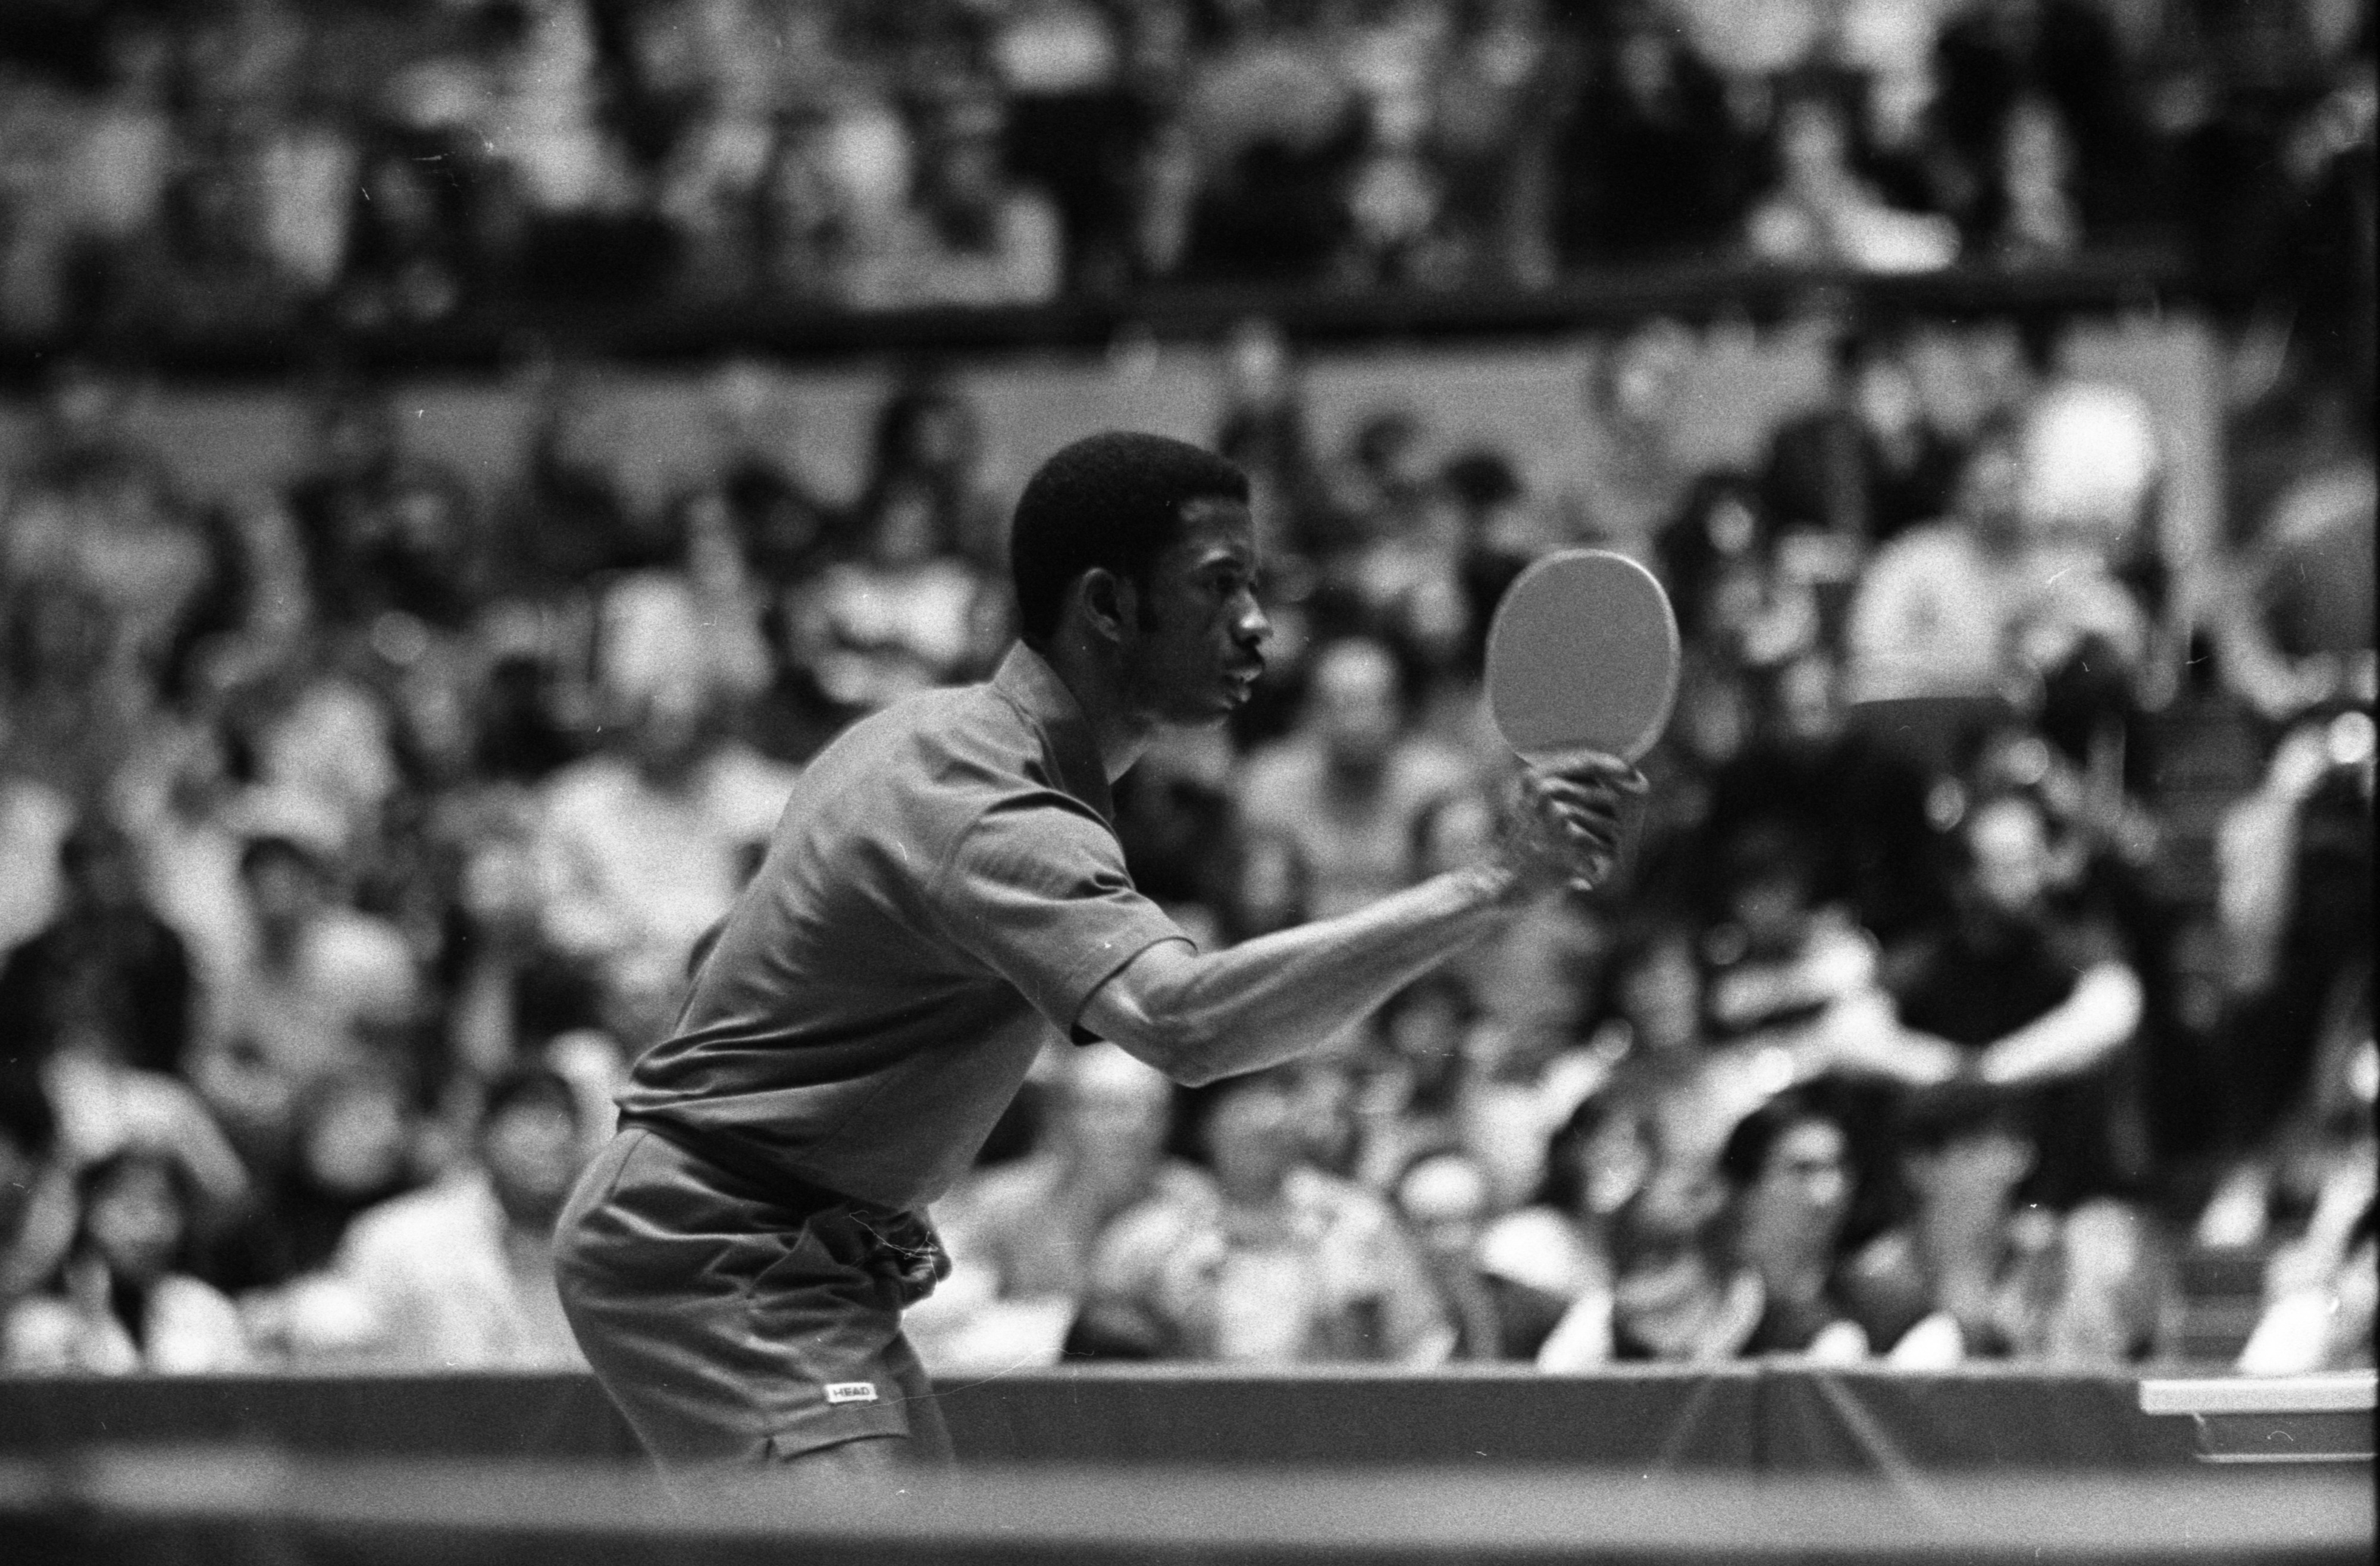 American Ping-Pong Player, George Brathwaite, At Ping-Pong Exhibition Match At Crisler Arena, April 1972 image